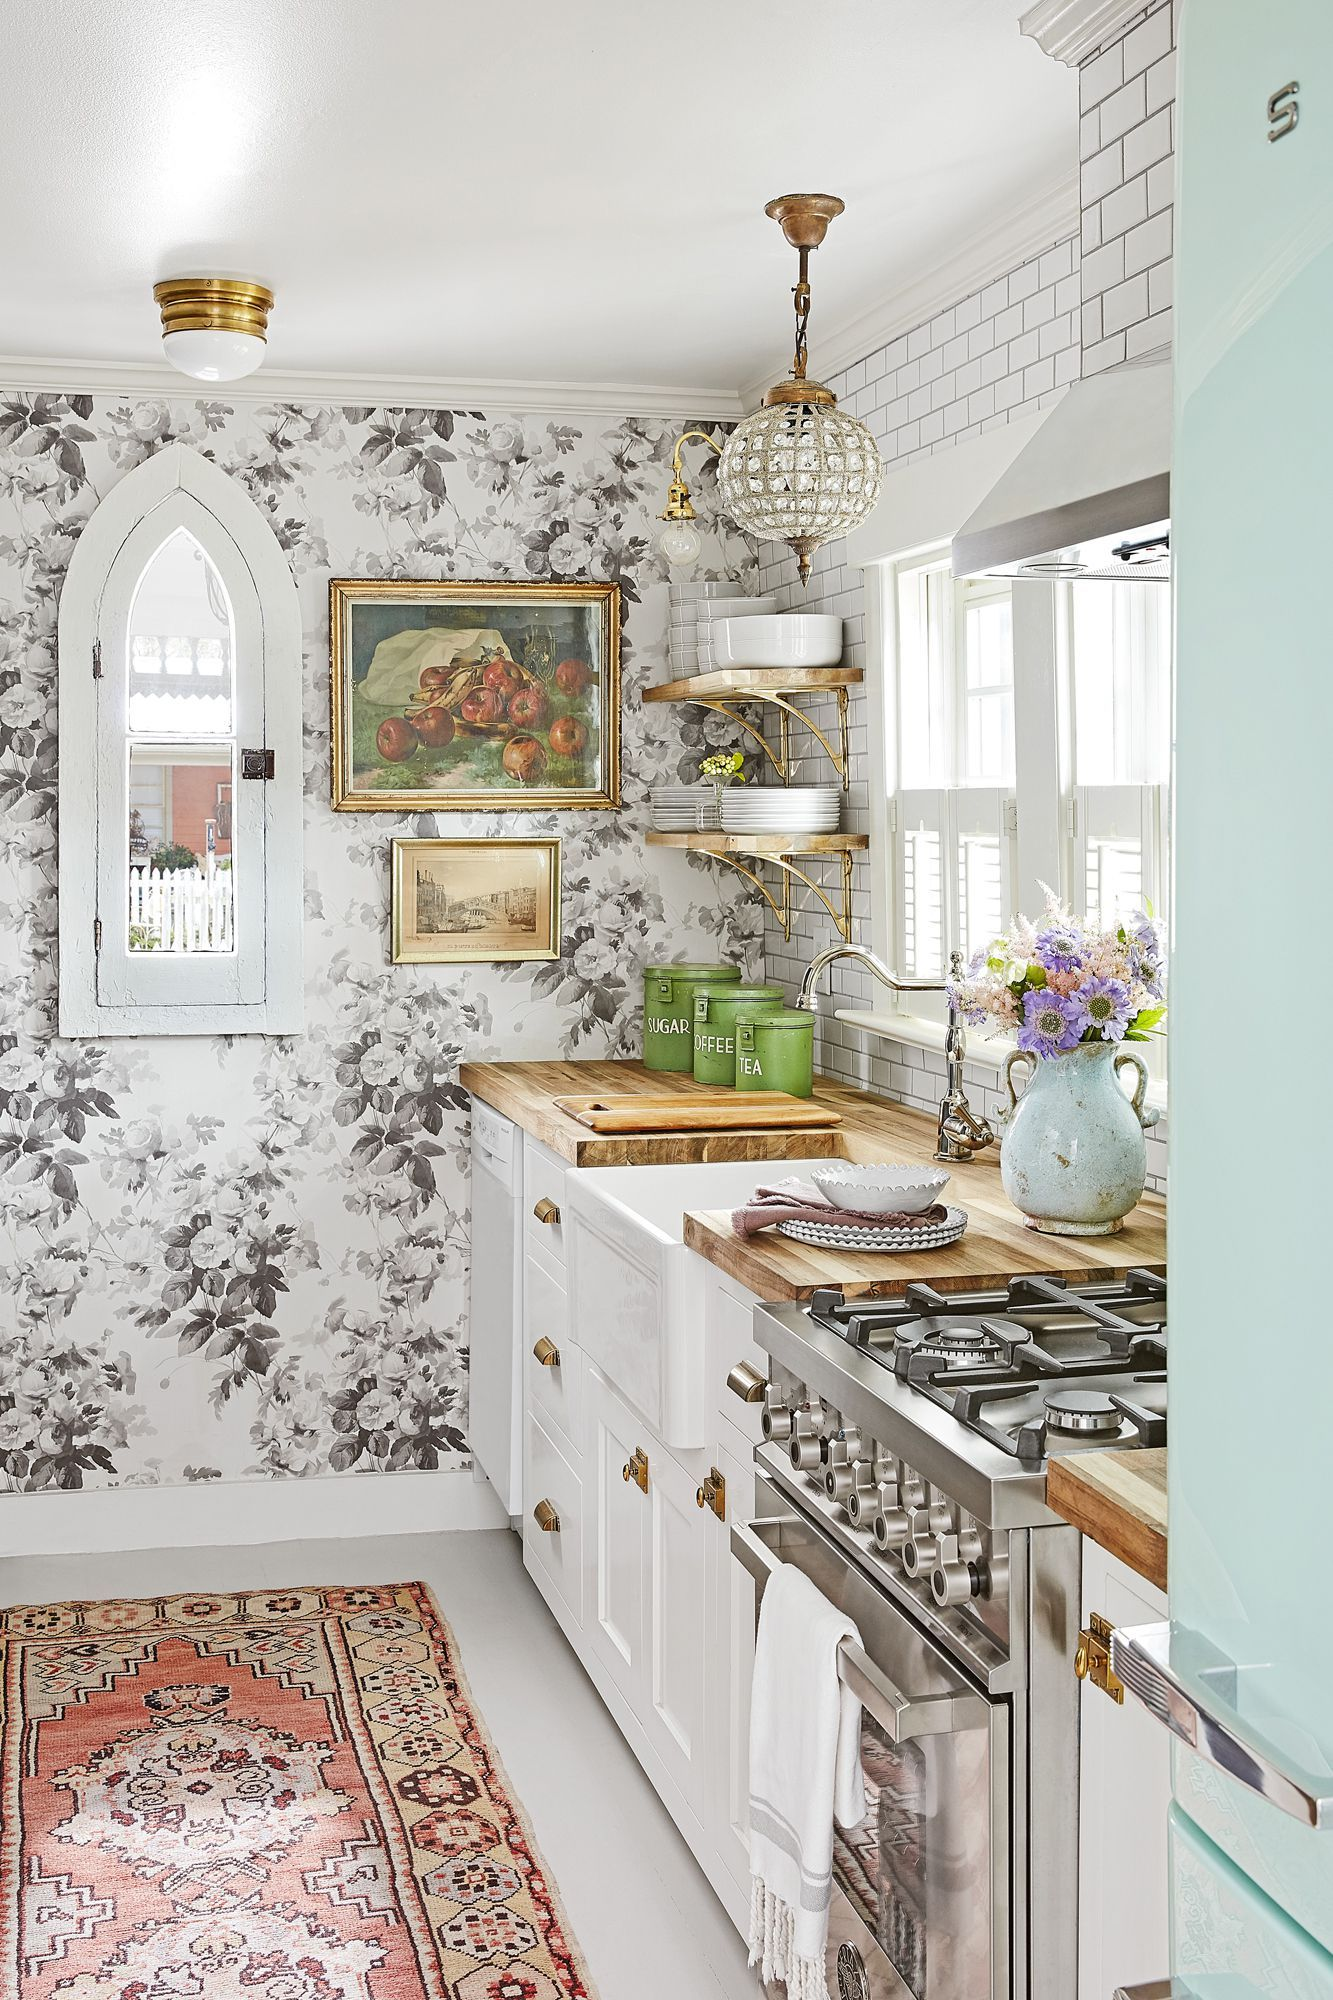 Take A Peek Inside This Historic 1890s Tennessee Cottage Turned